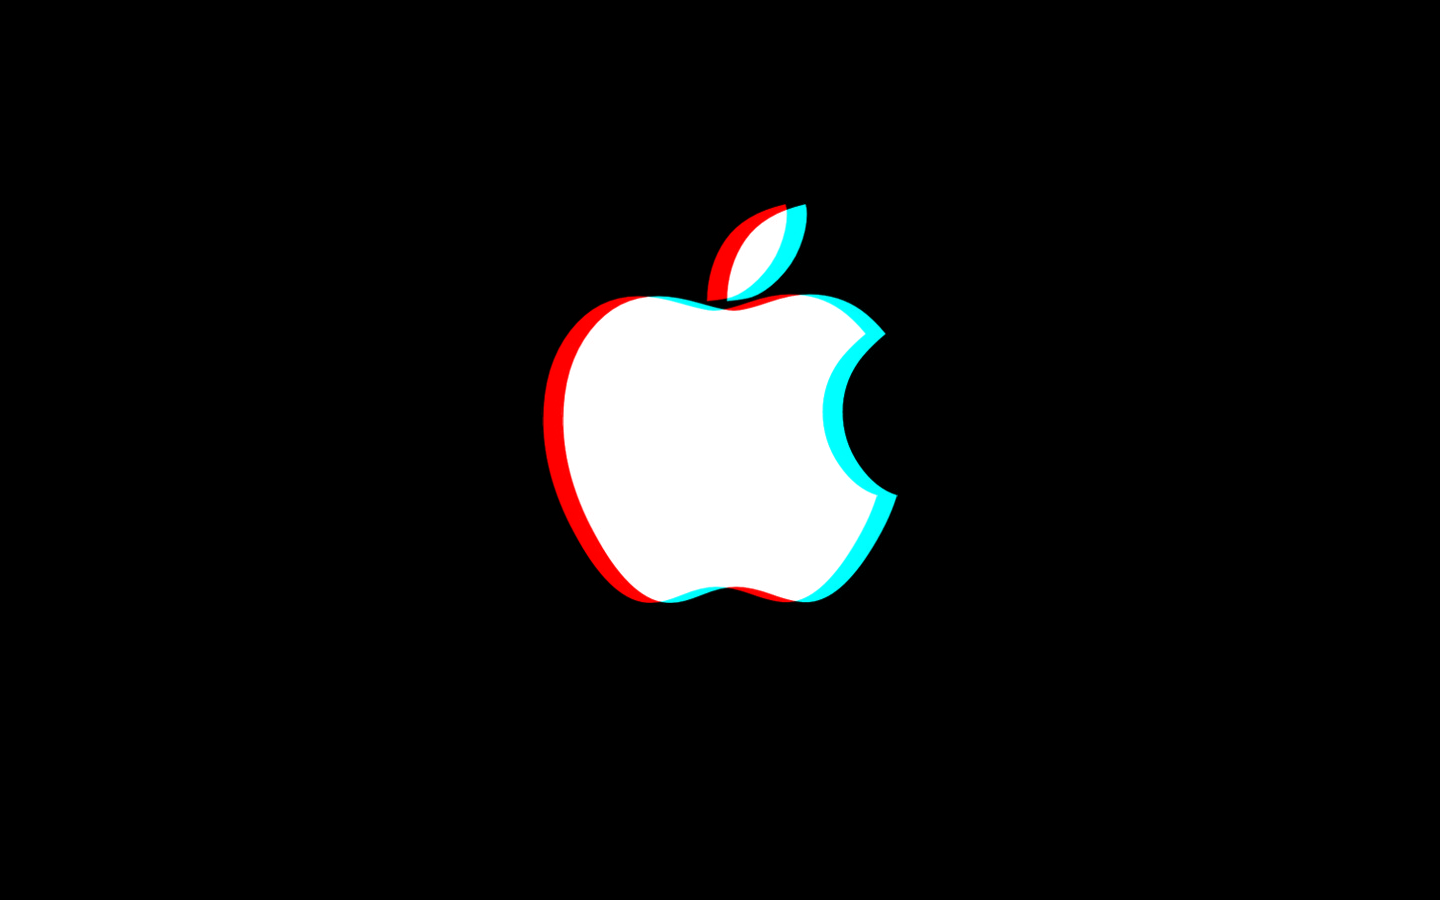 Report: Apple's Rumored VR Headset Could Feature 3,000 PPI MicroOLED